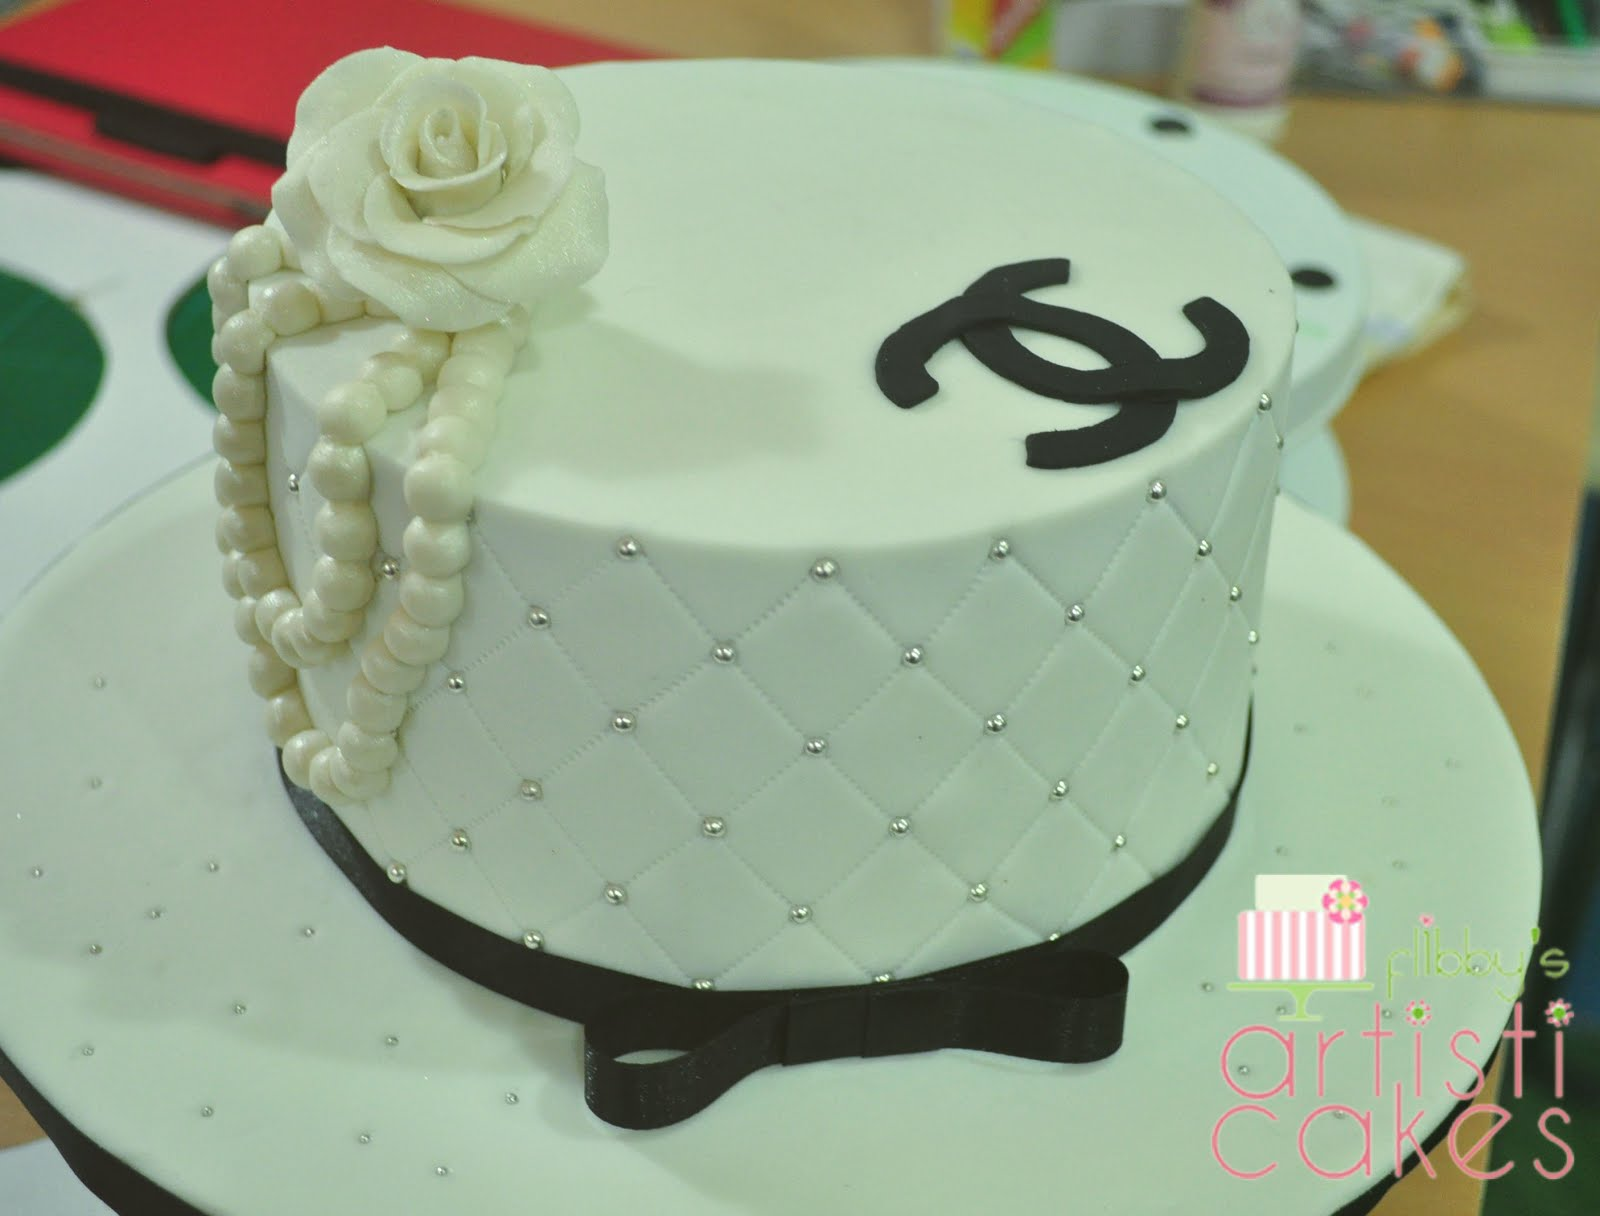 1600 Sf To Sm Flibby S Artisticakes Top 5 Favorite Cakes From 2012